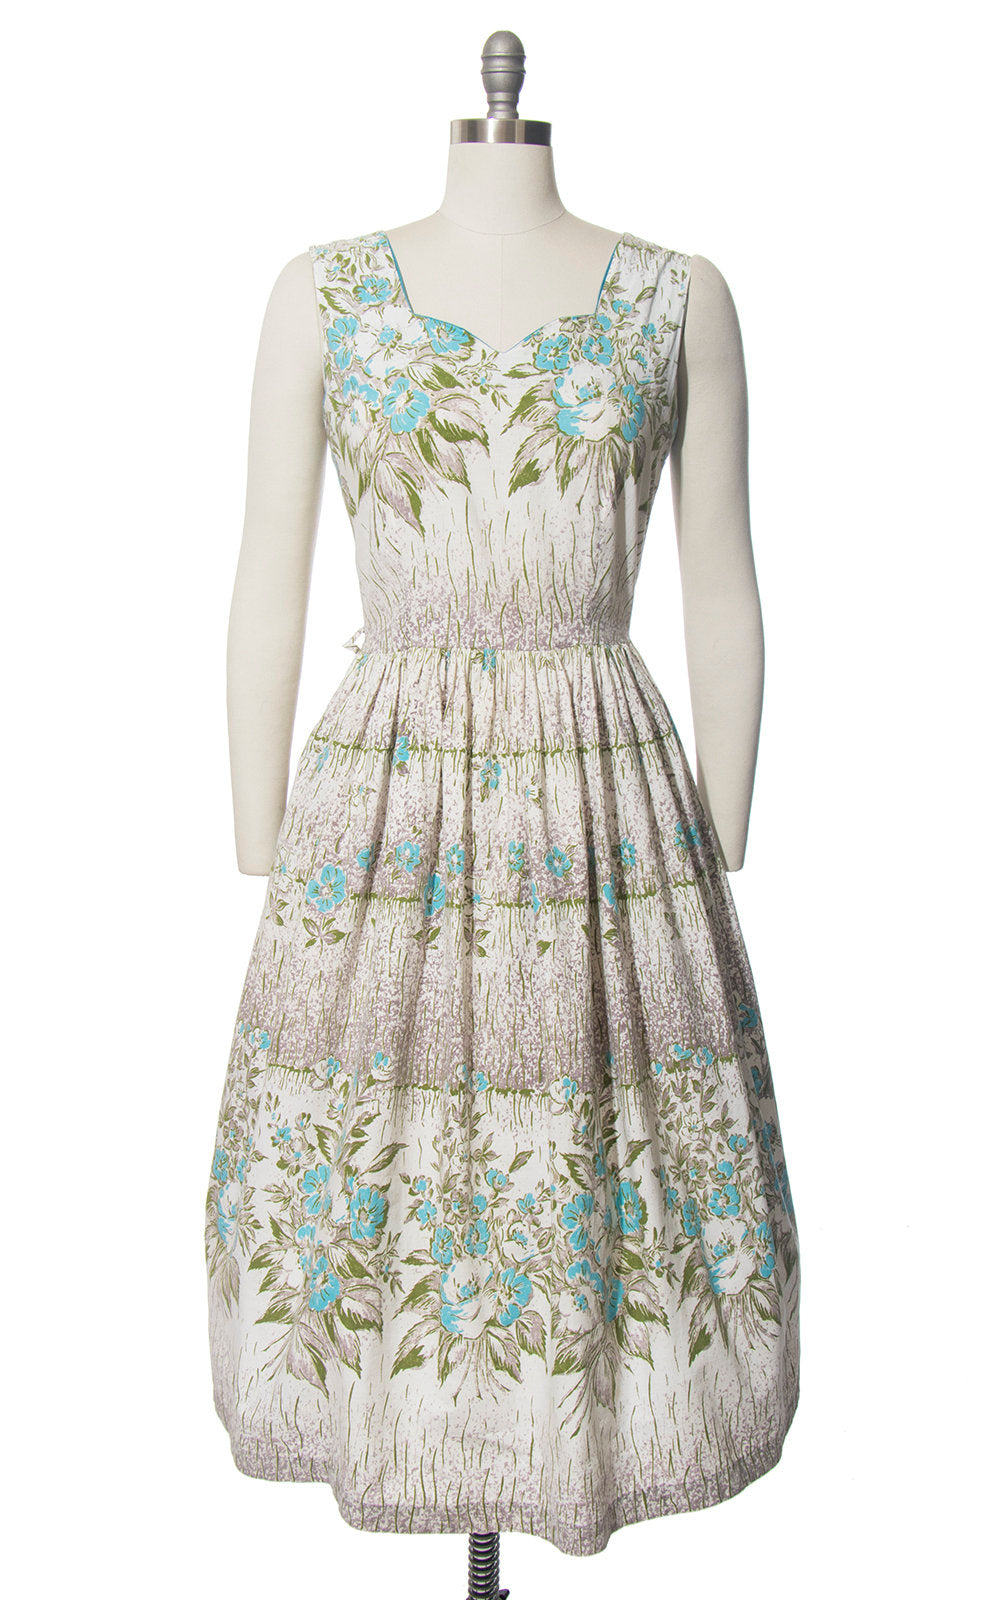 Vintage 1940s 1950s Dress | 40s 50s Floral Border Print Cotton Sundress Blue White Full Skirt Day Dress with Pocket (small)